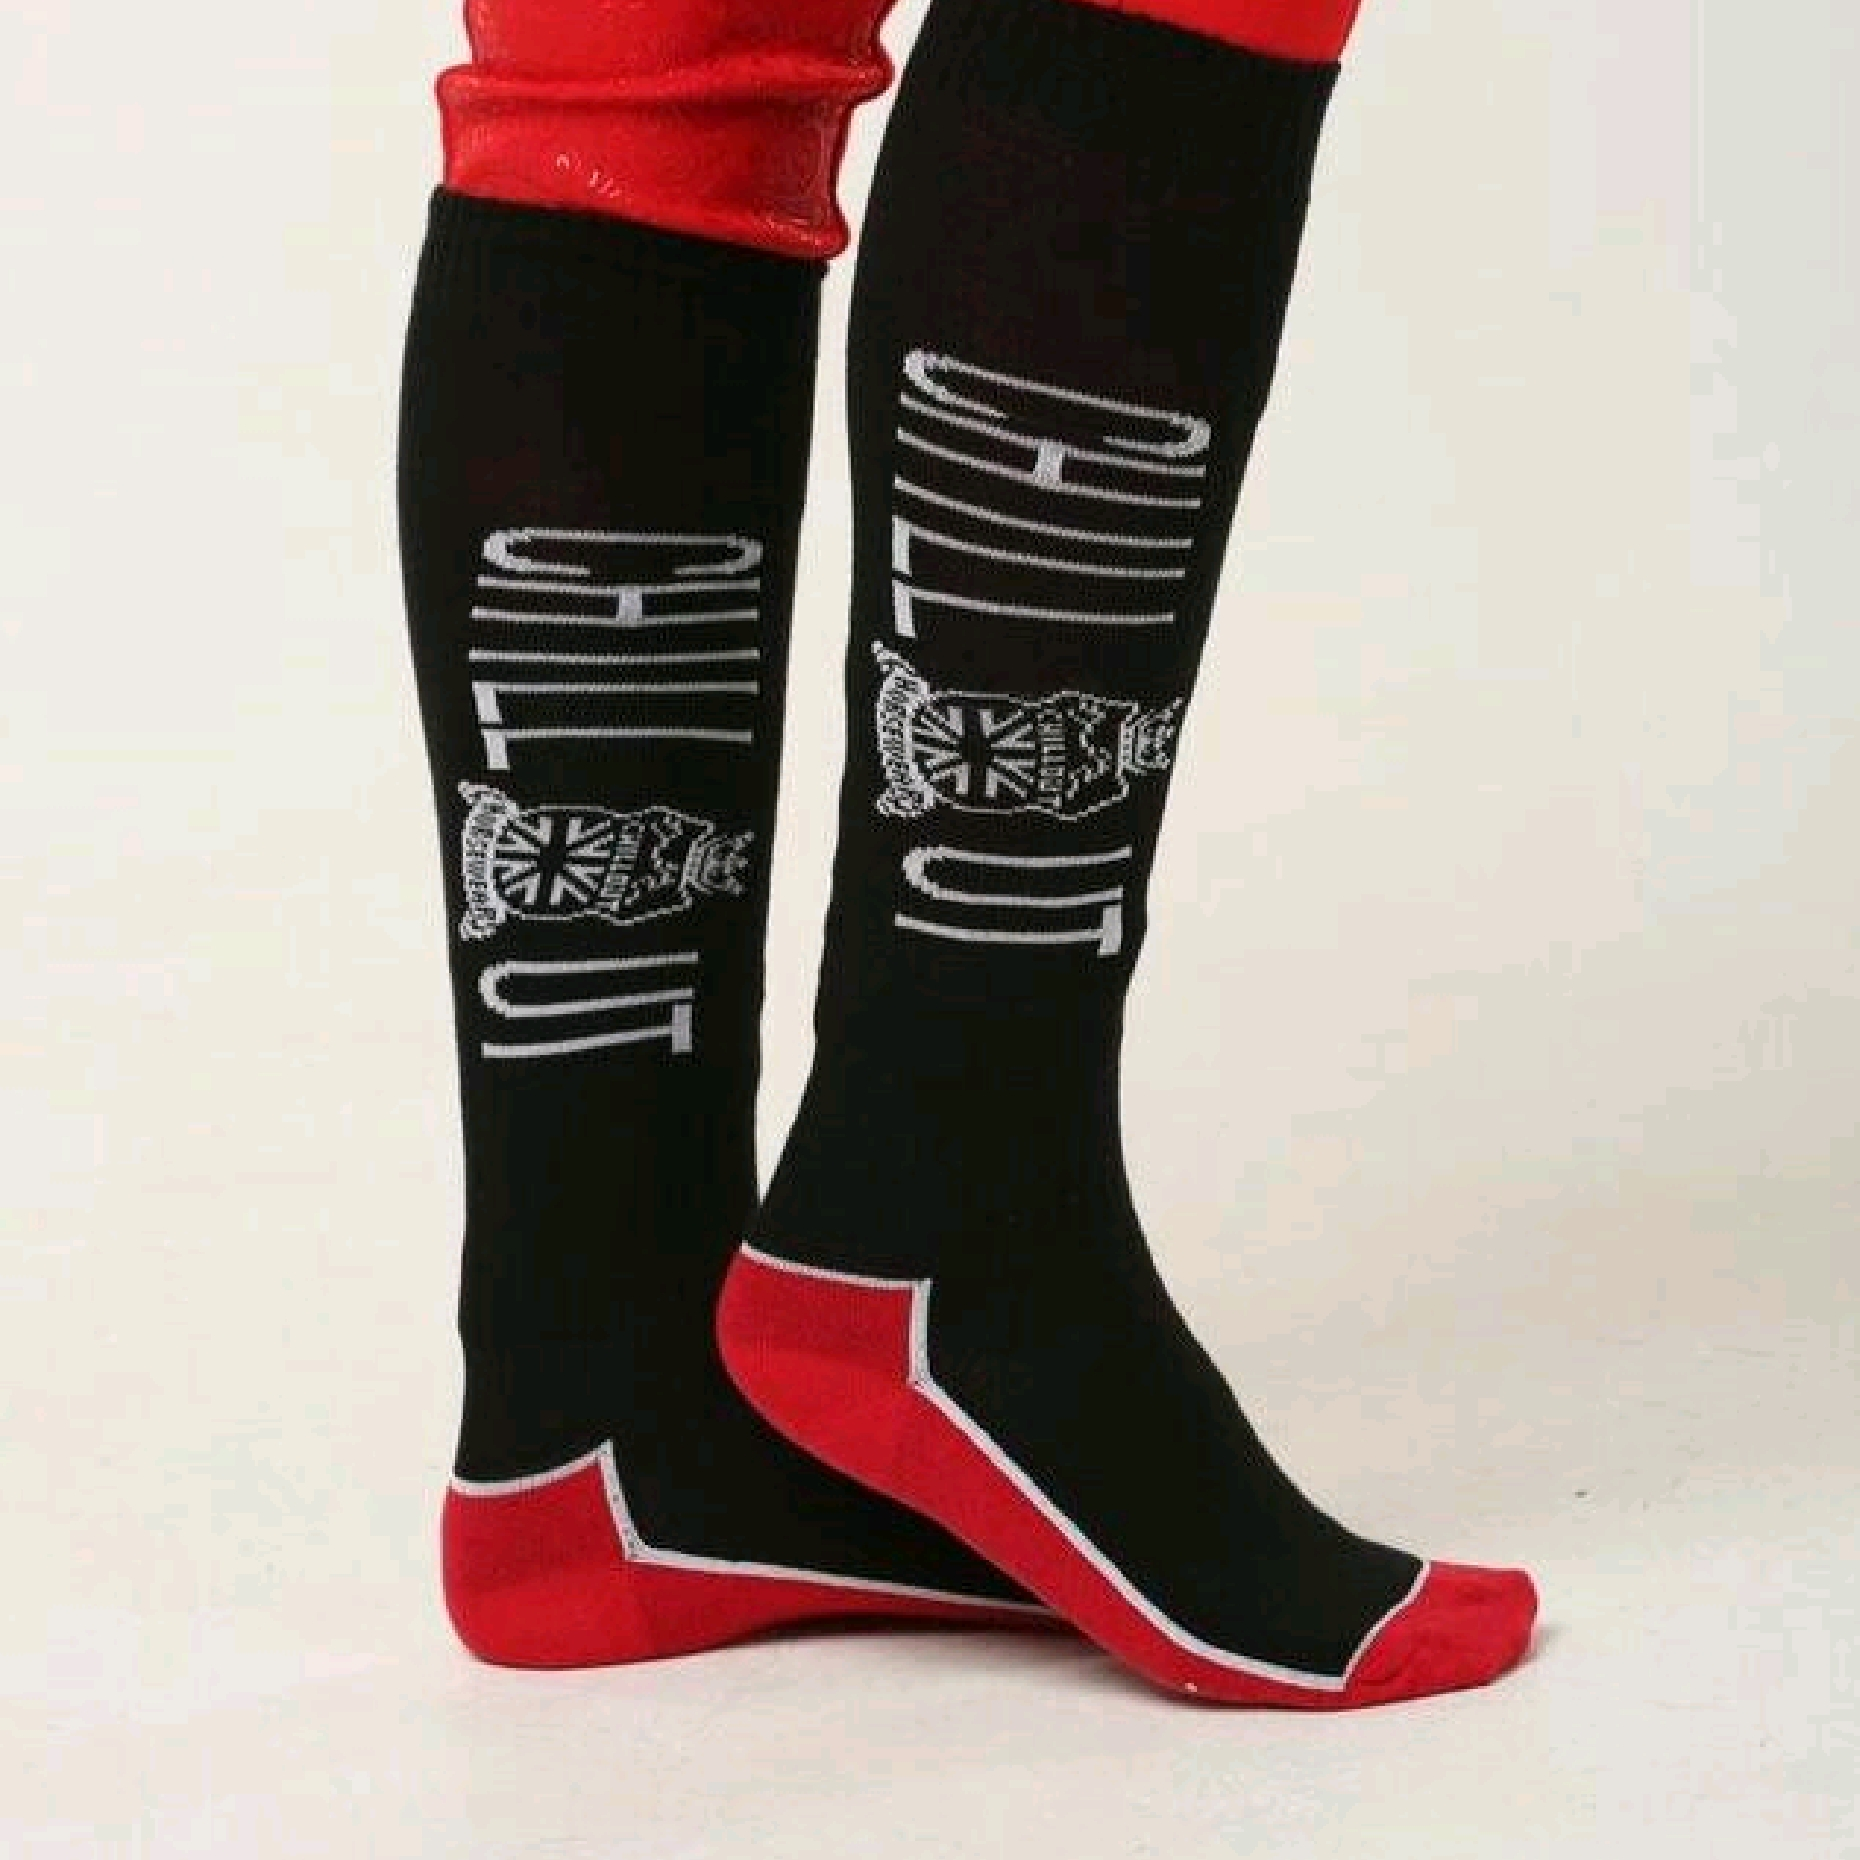 Chillout Socks